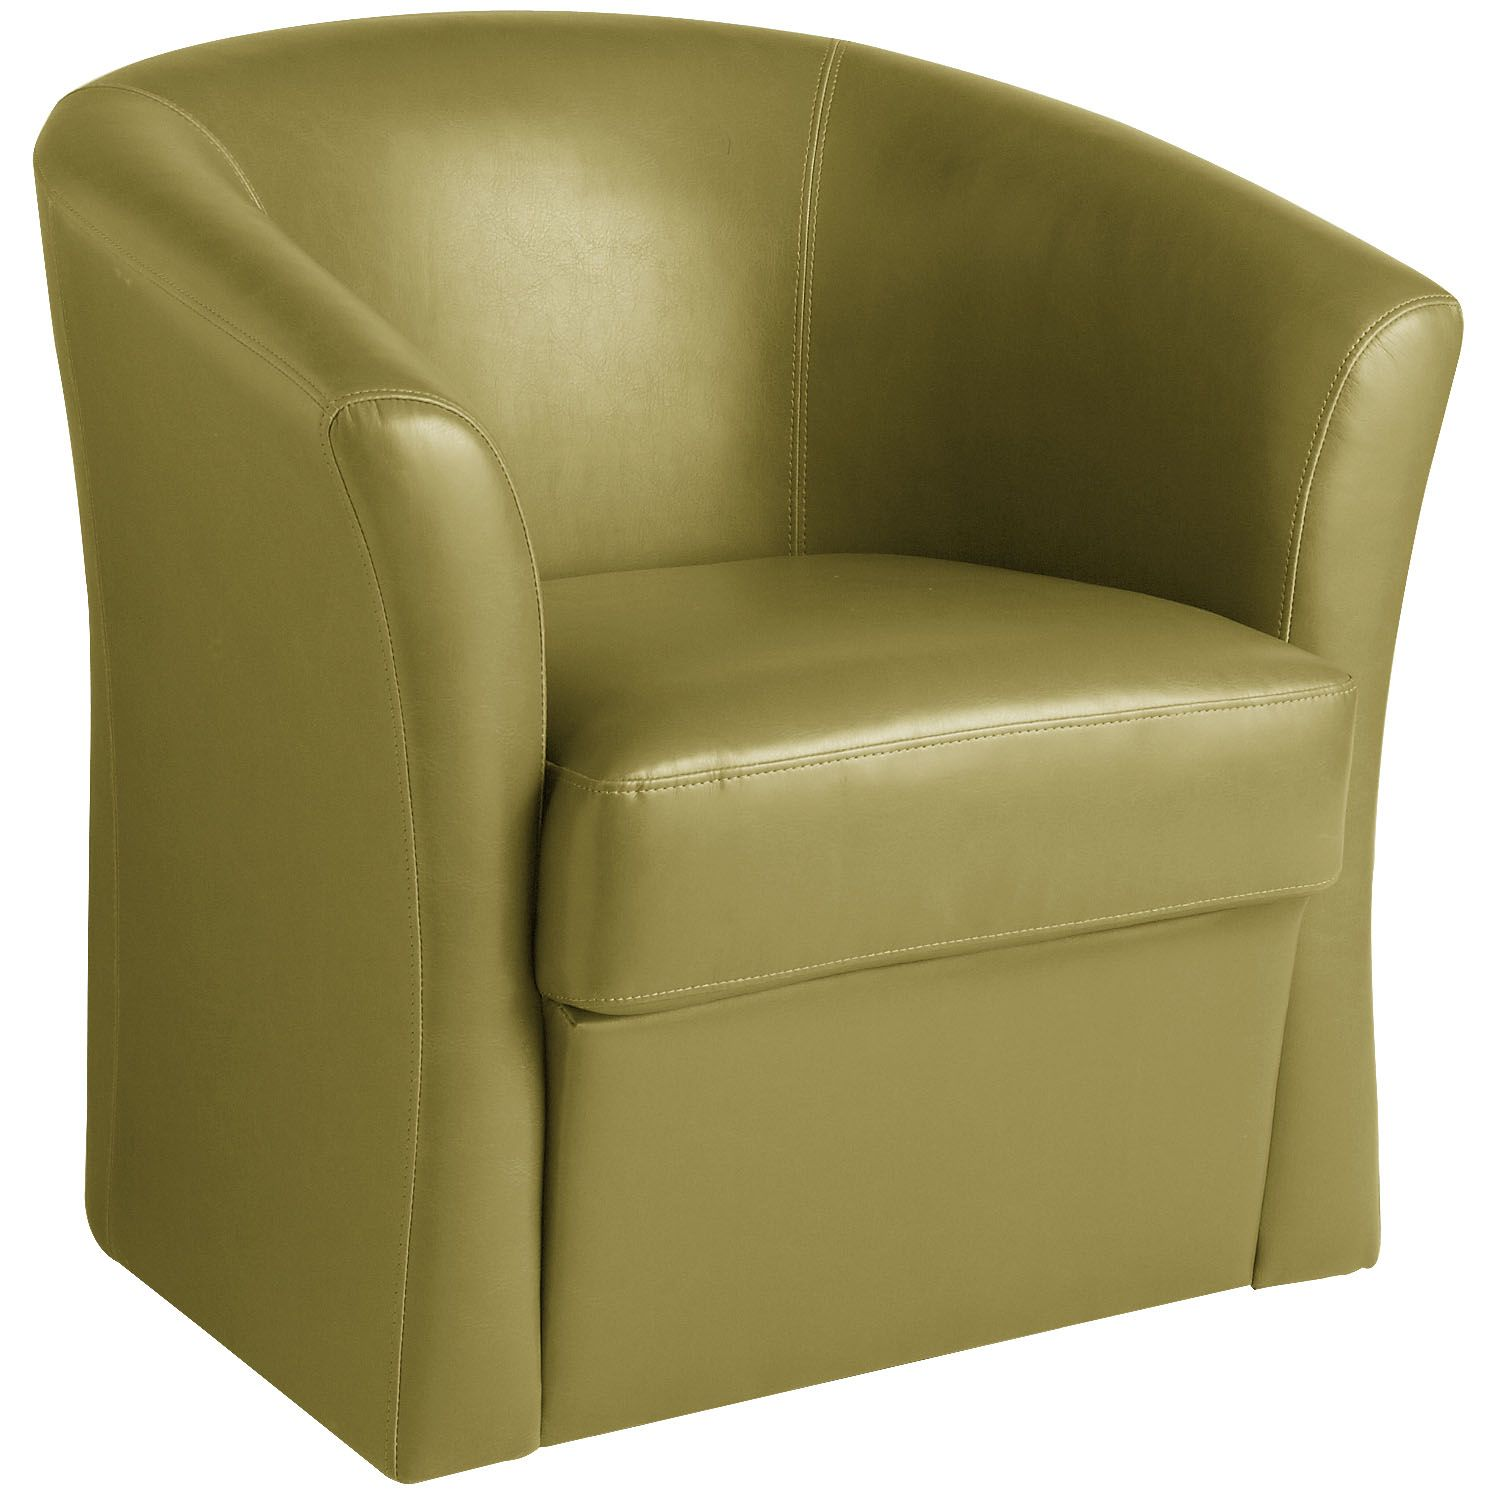 Isaac Swivel Chair Green Office chairs for sale, Chair